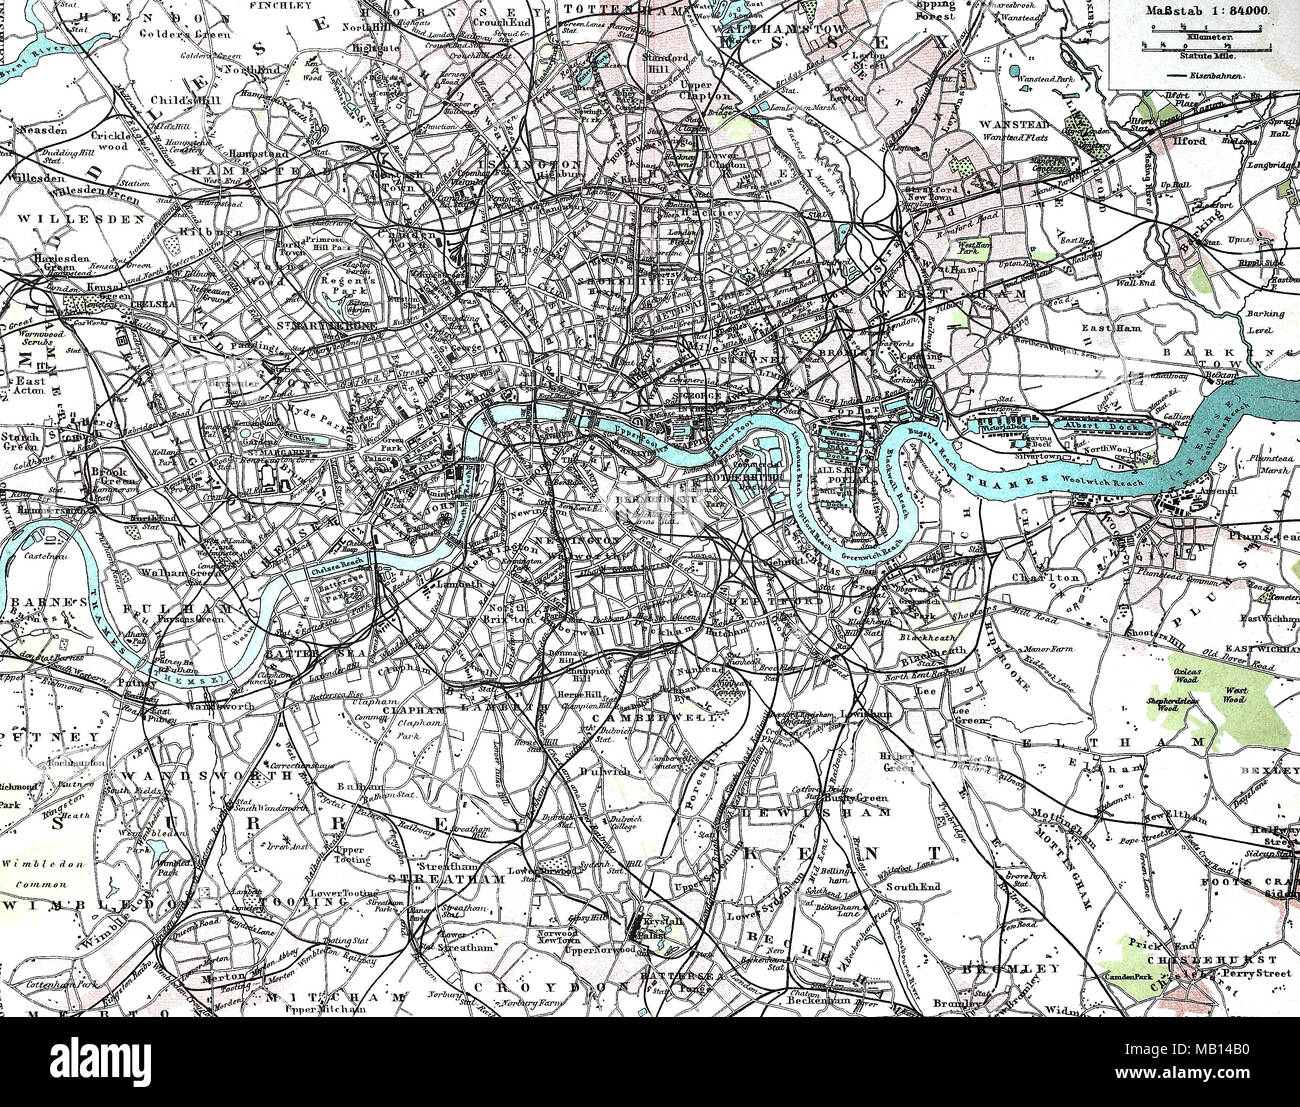 London England City Map.Stadtplan Vom Inneren Zentrum Von London England 1895 City Map Of